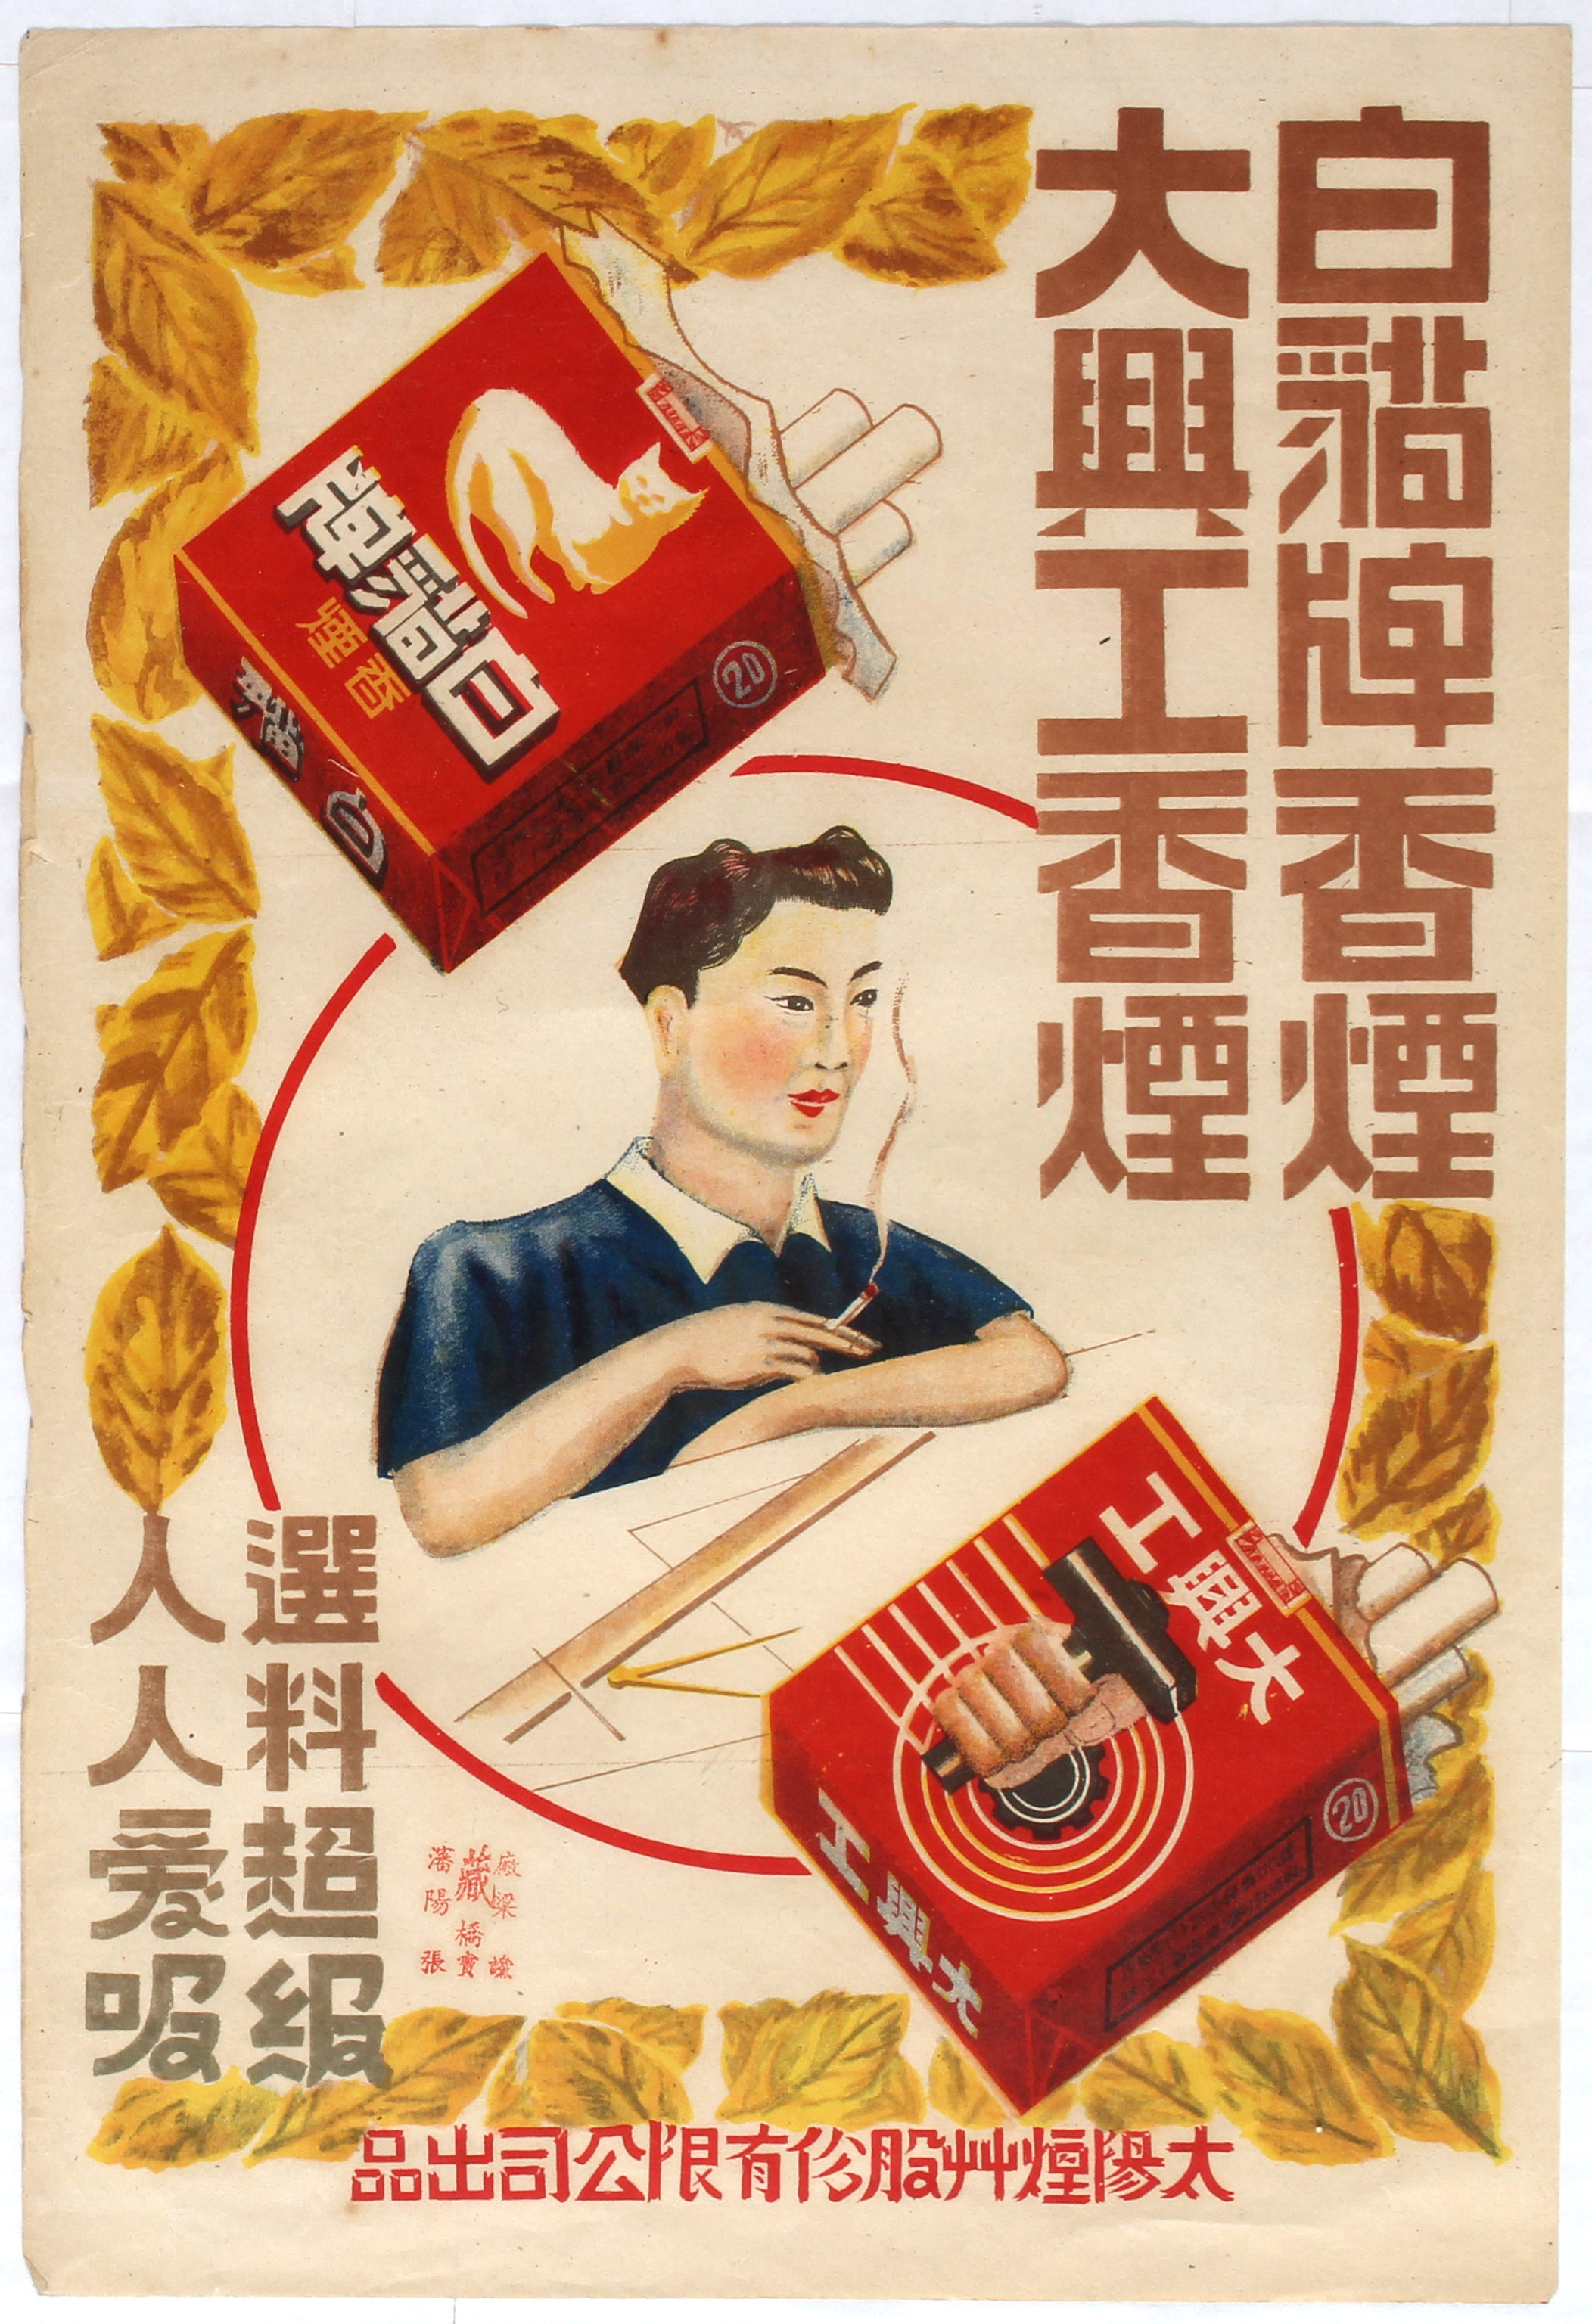 Lot 1207 - Advertising Poster Chinese cigarettes Cat Hammer